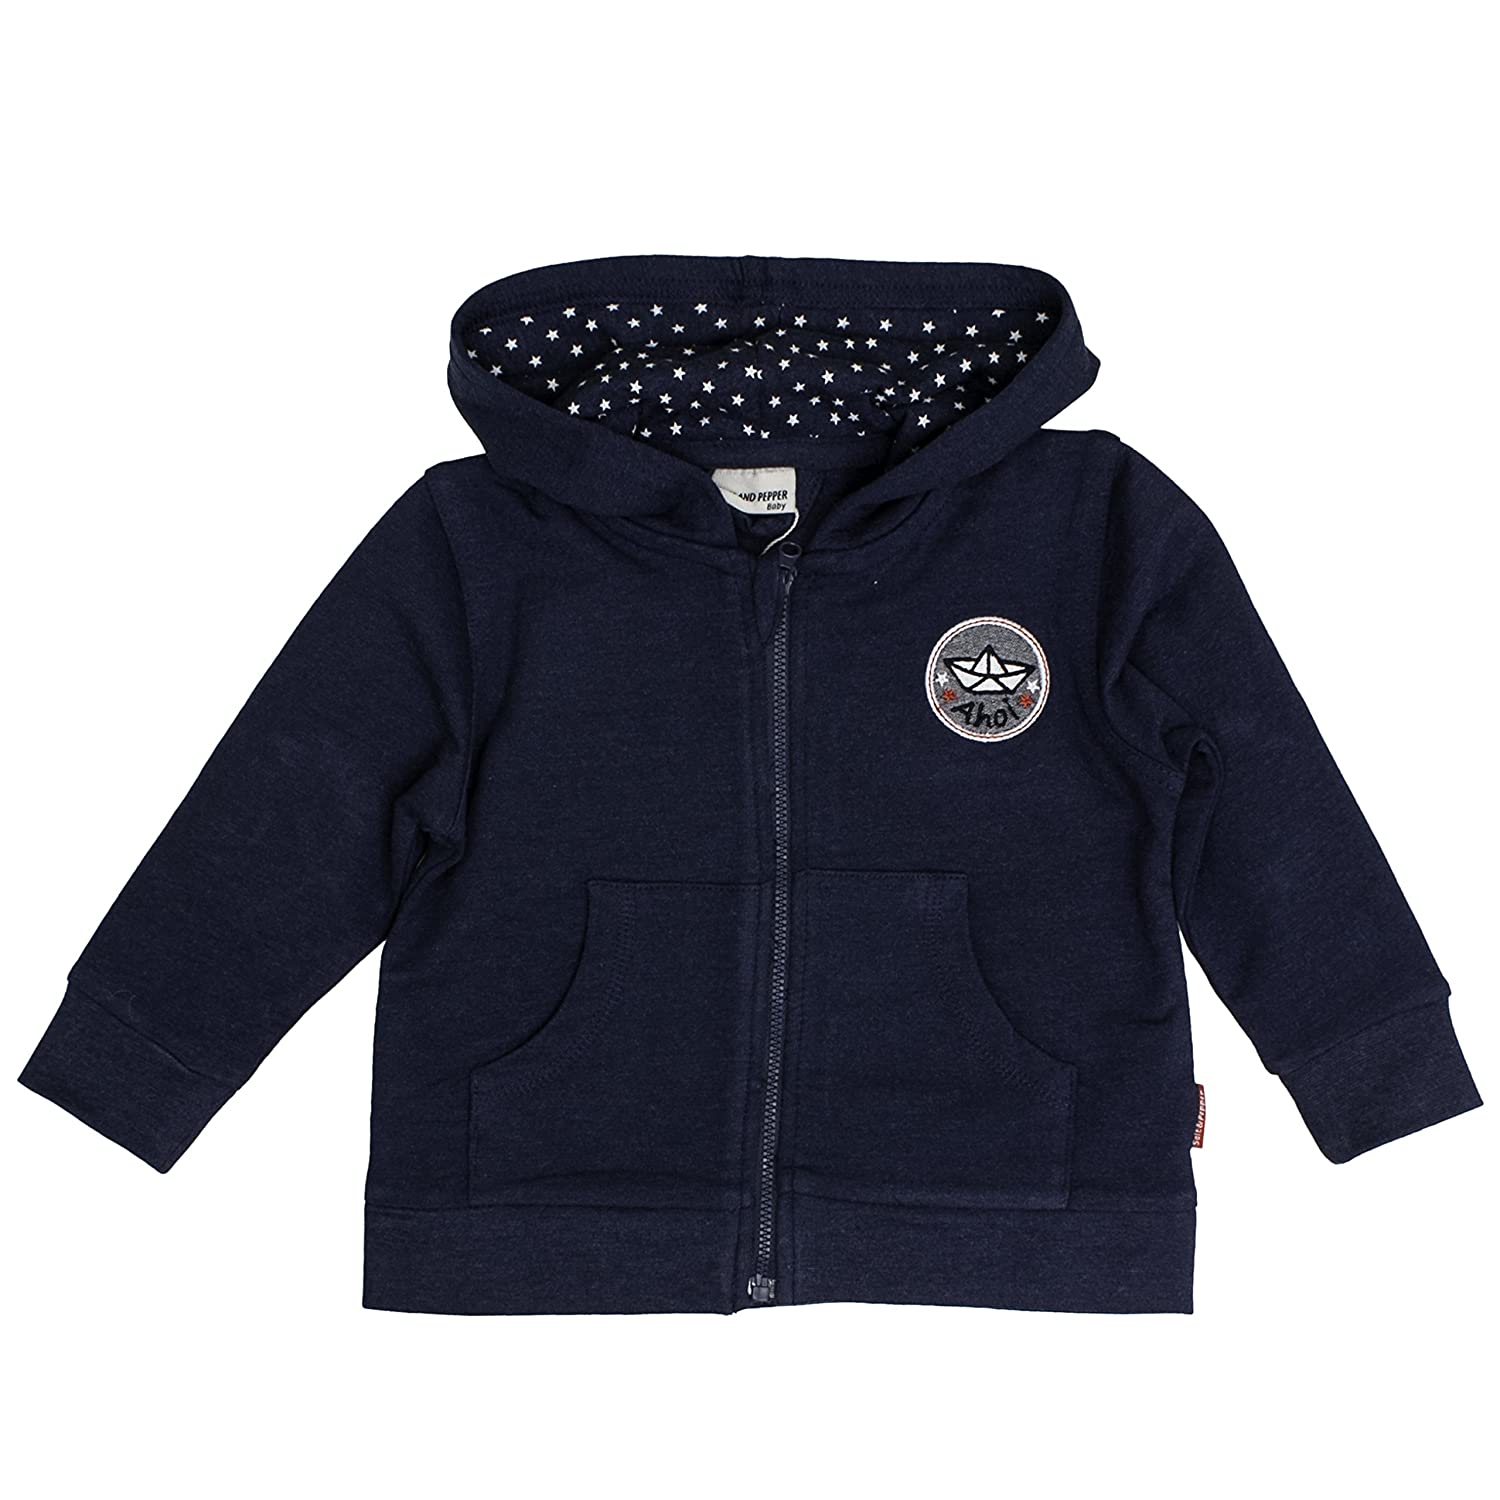 Salt & Pepper B Jacket Pirat Kap. Uni, Blouson Bébé Garçon SALT AND PEPPER 83218138